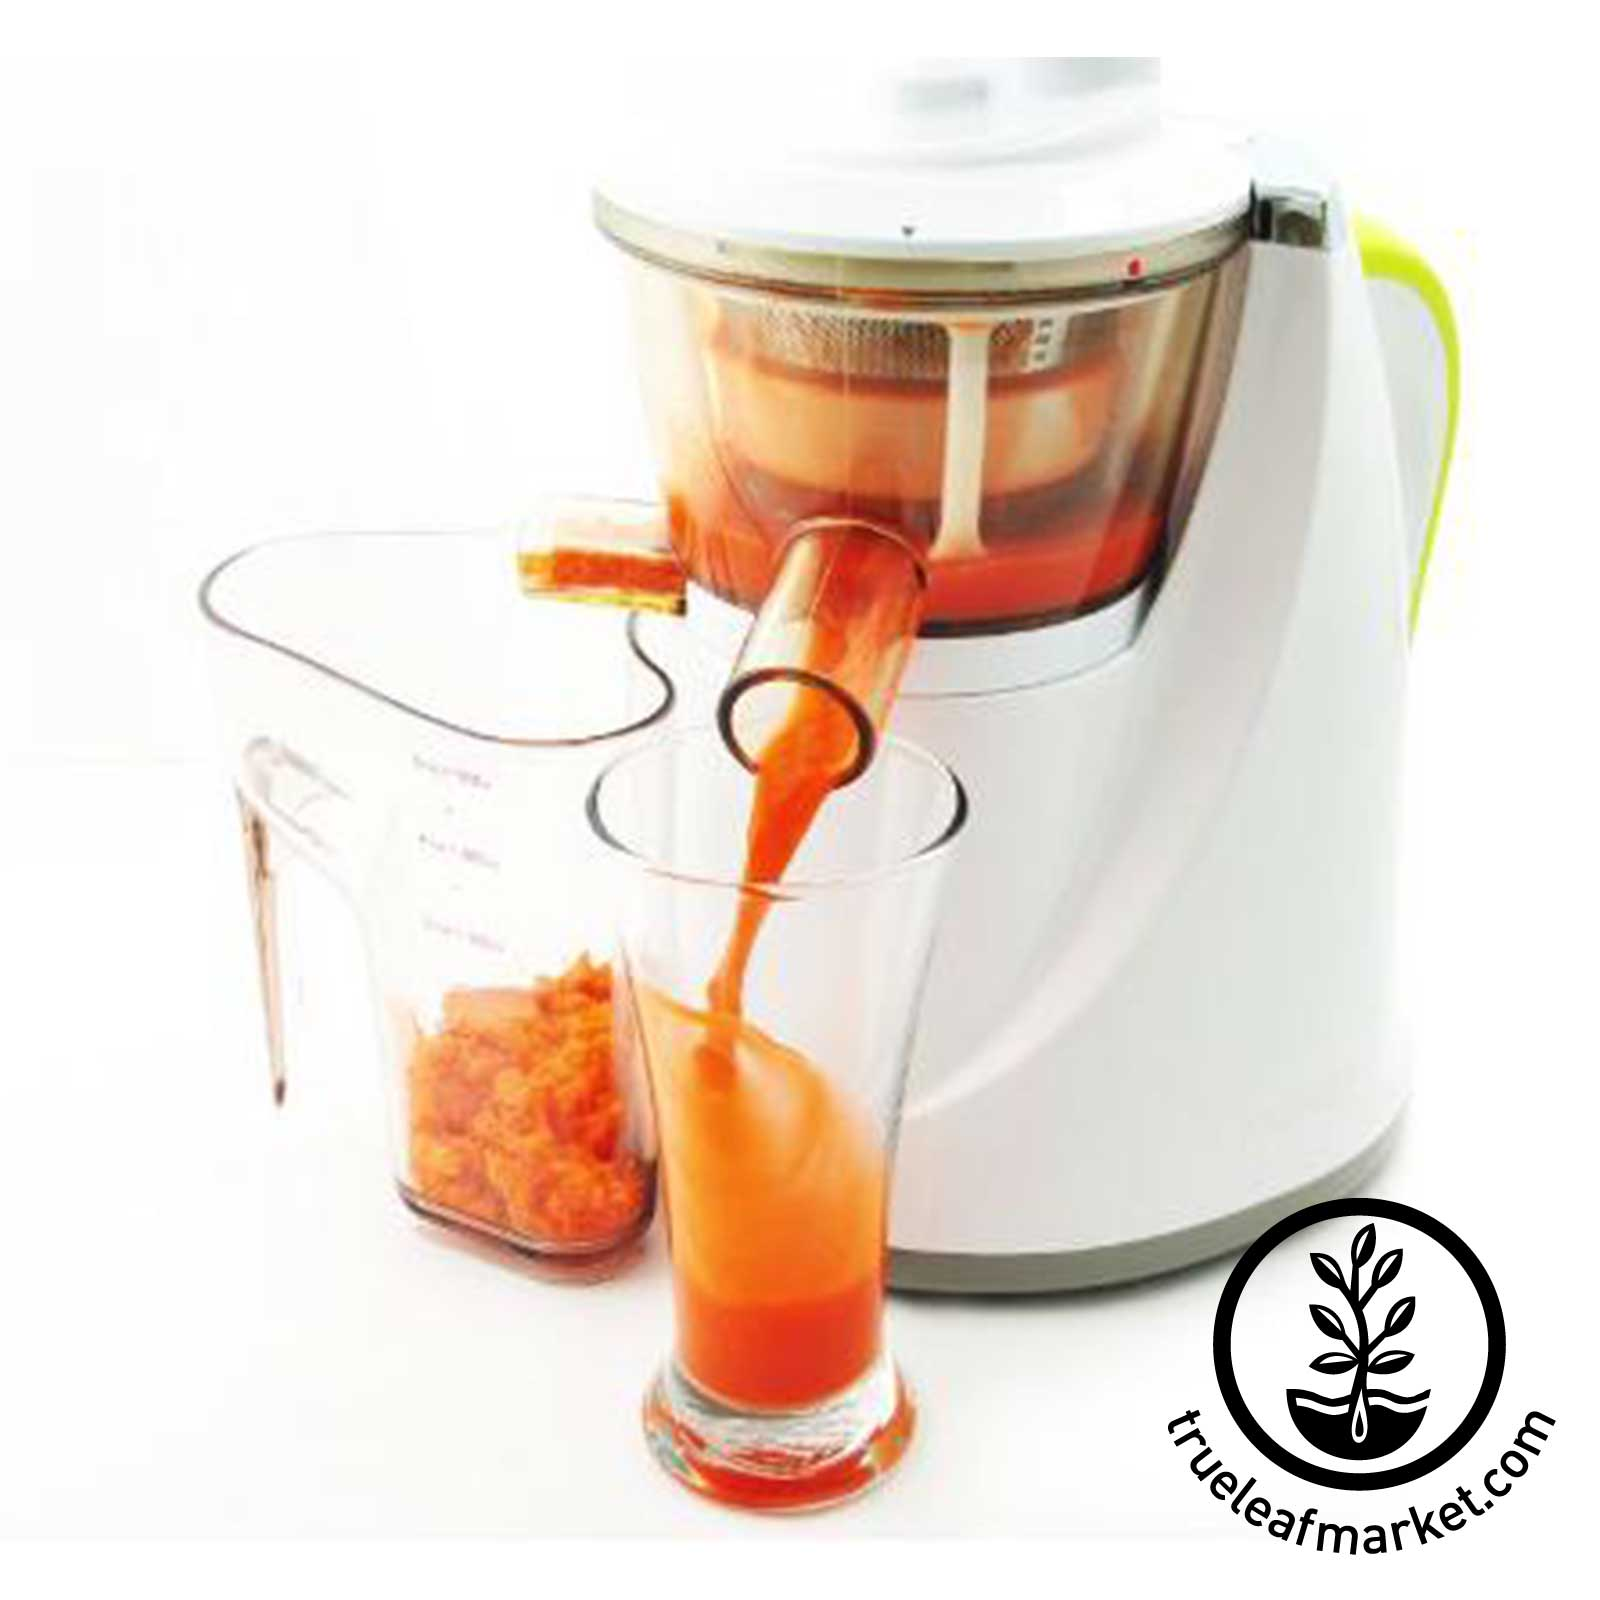 Hurom Juicer: Carrots? Check.